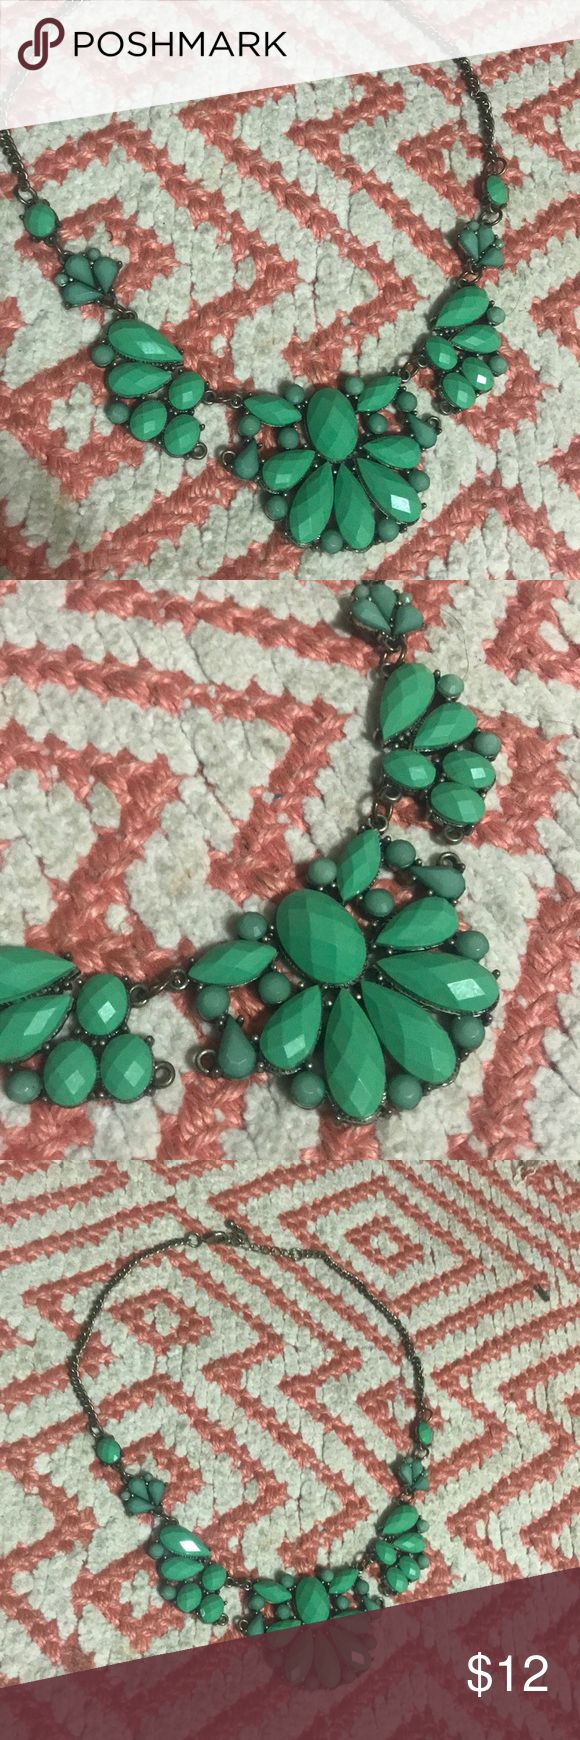 Teal necklace Perfect statement necklace Jewelry Necklaces